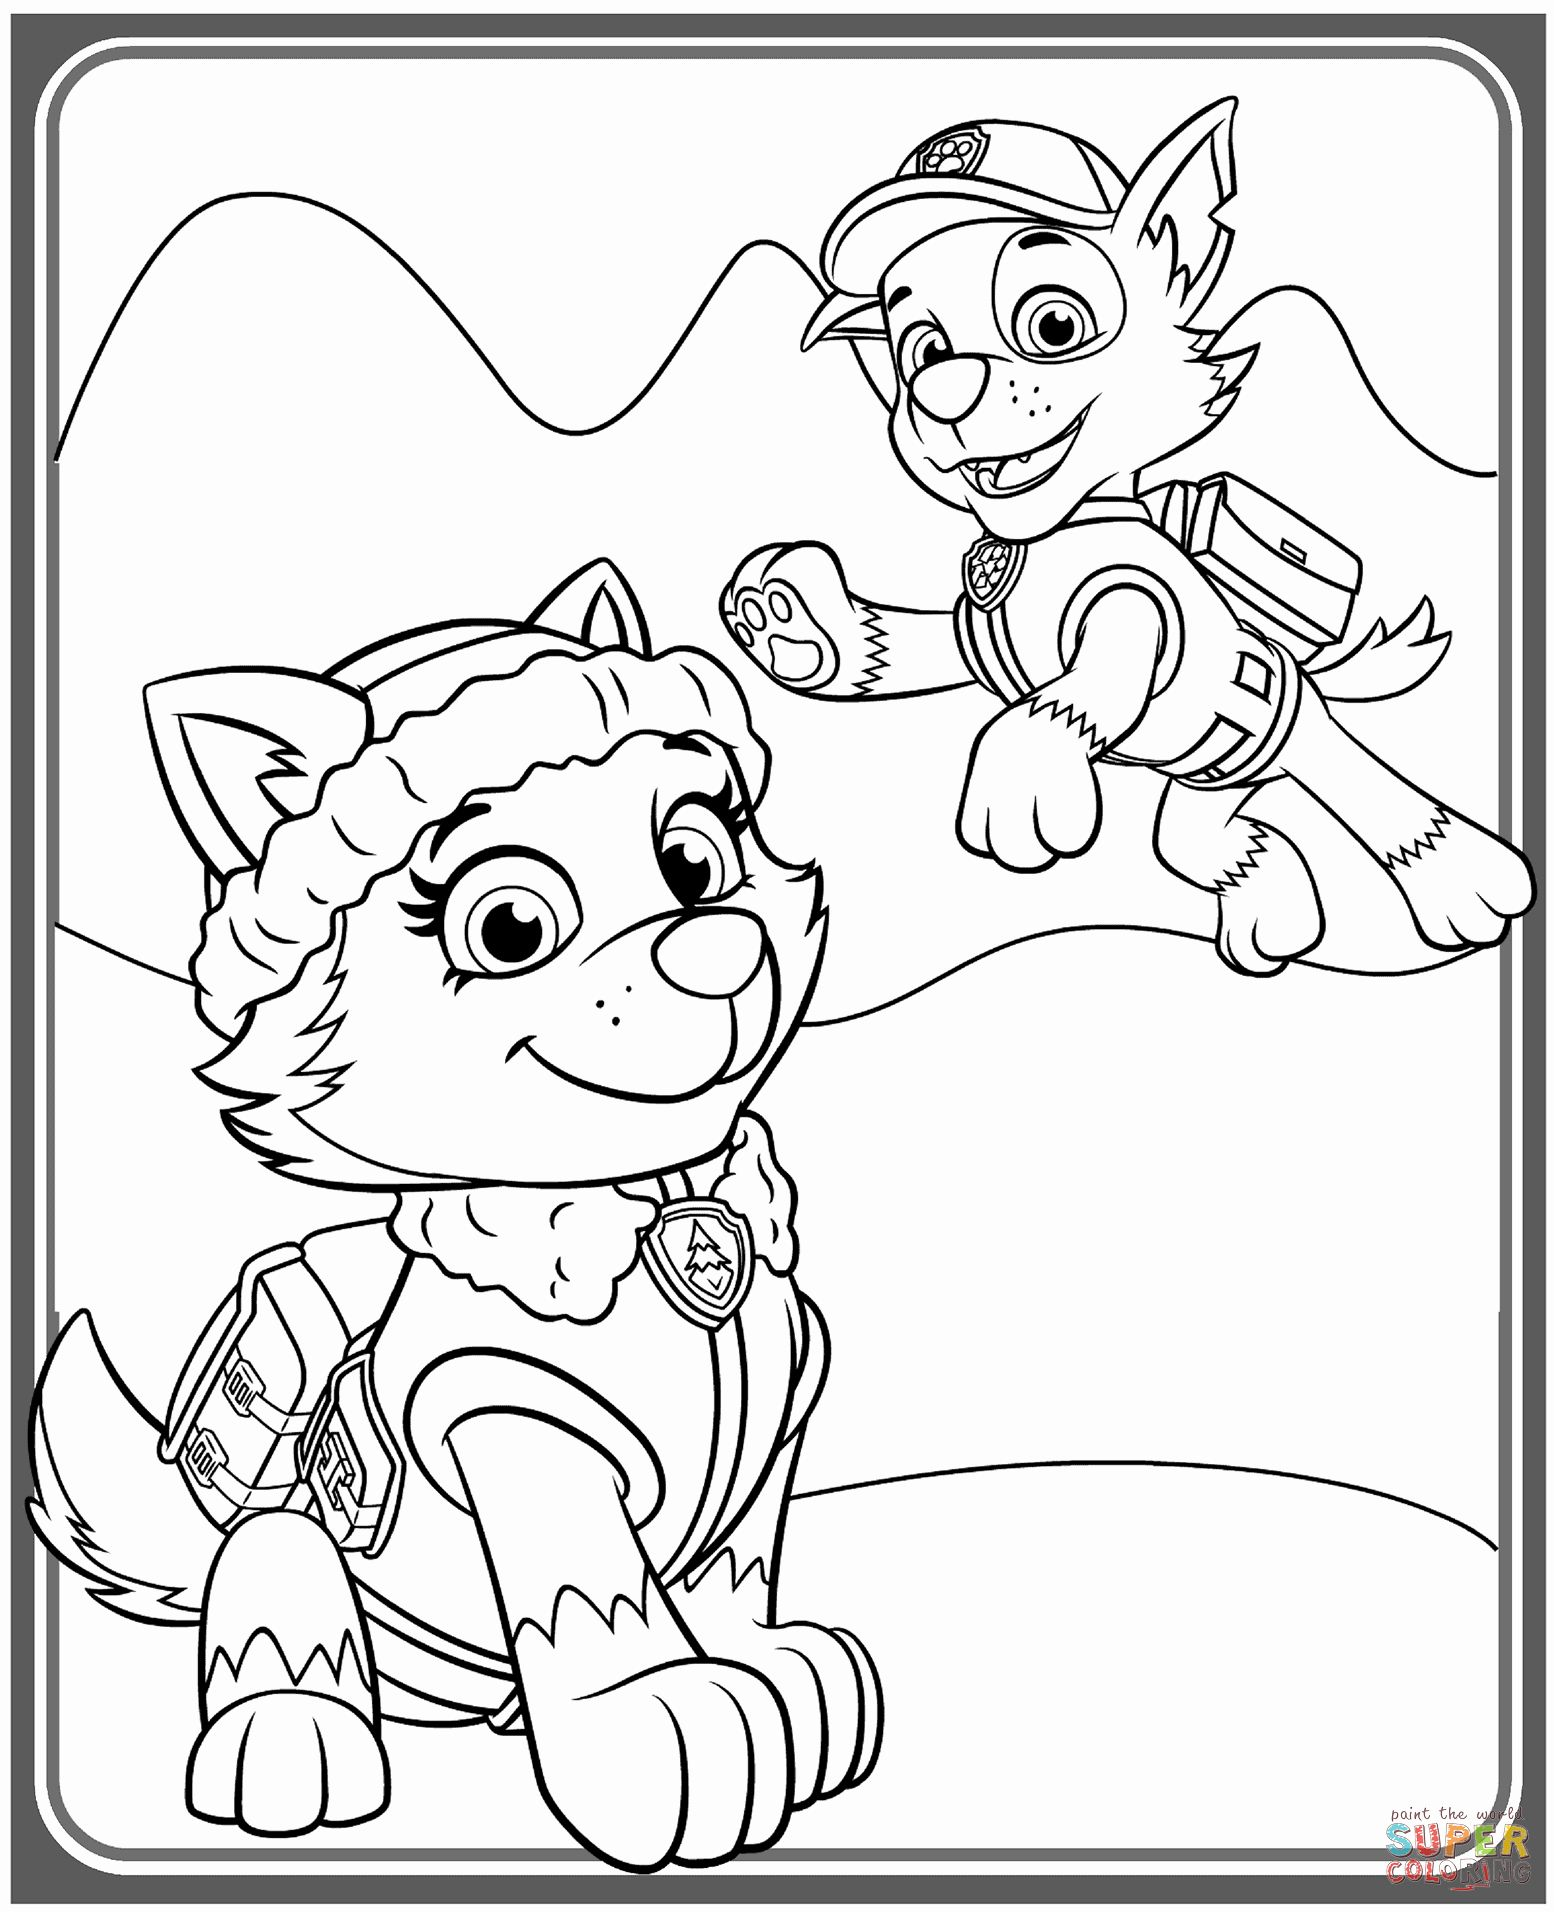 Paw Patrol Everest Coloring Page Elegant Everest And Rocky